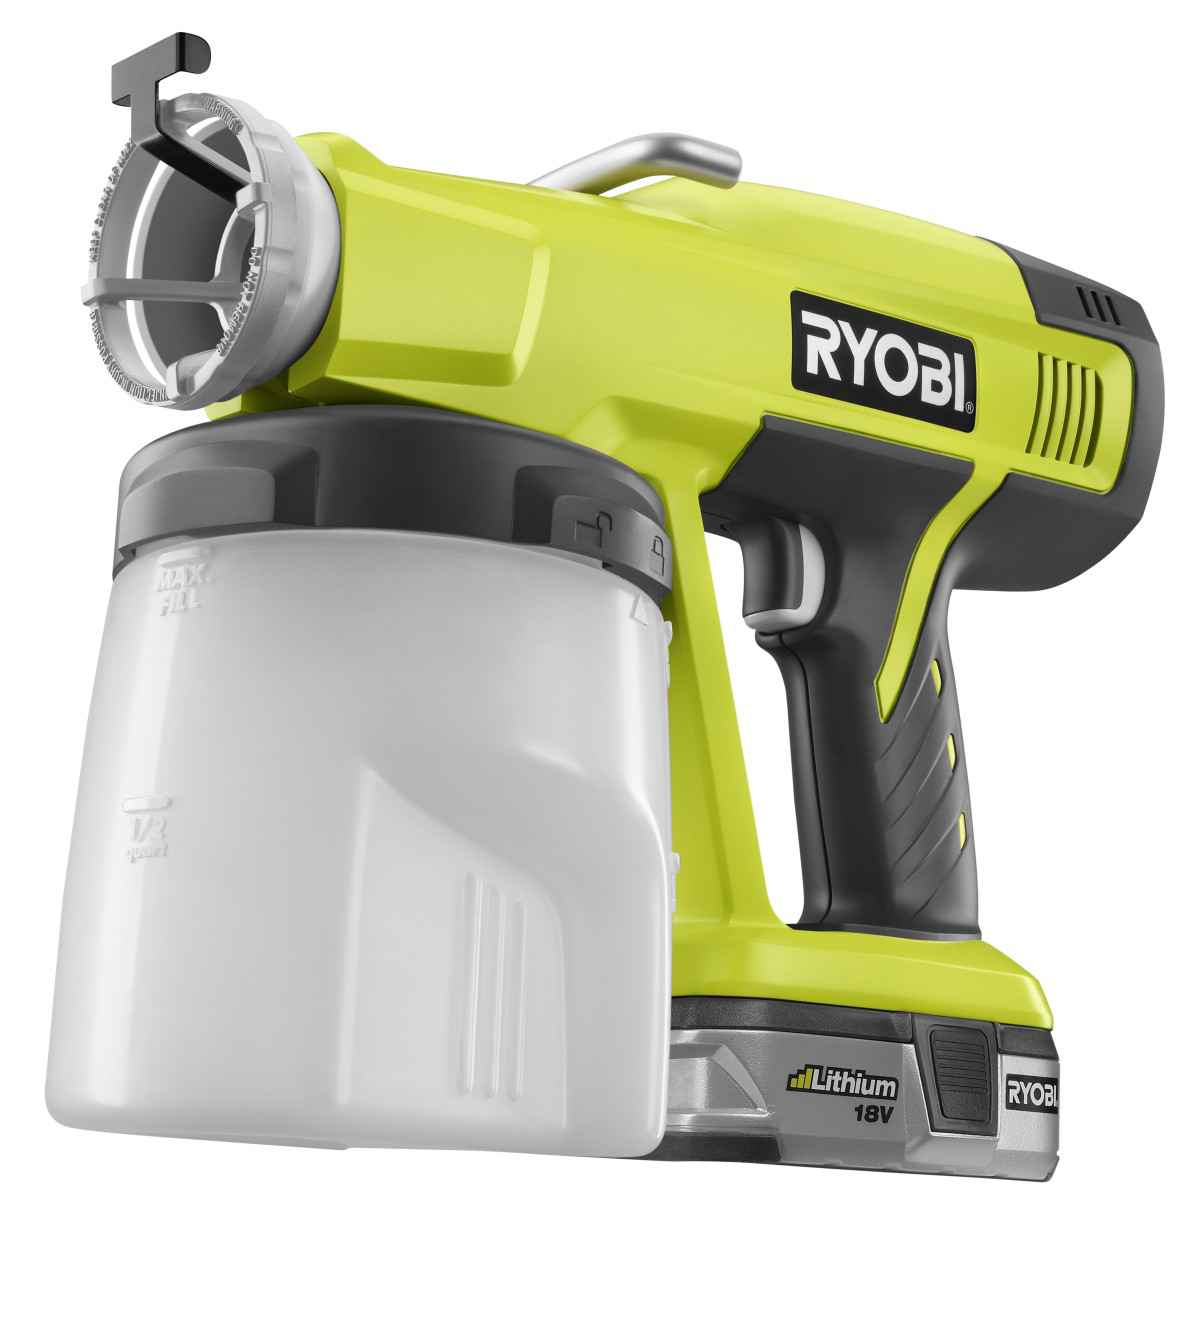 Ryobi Paint Sprayer Accessory